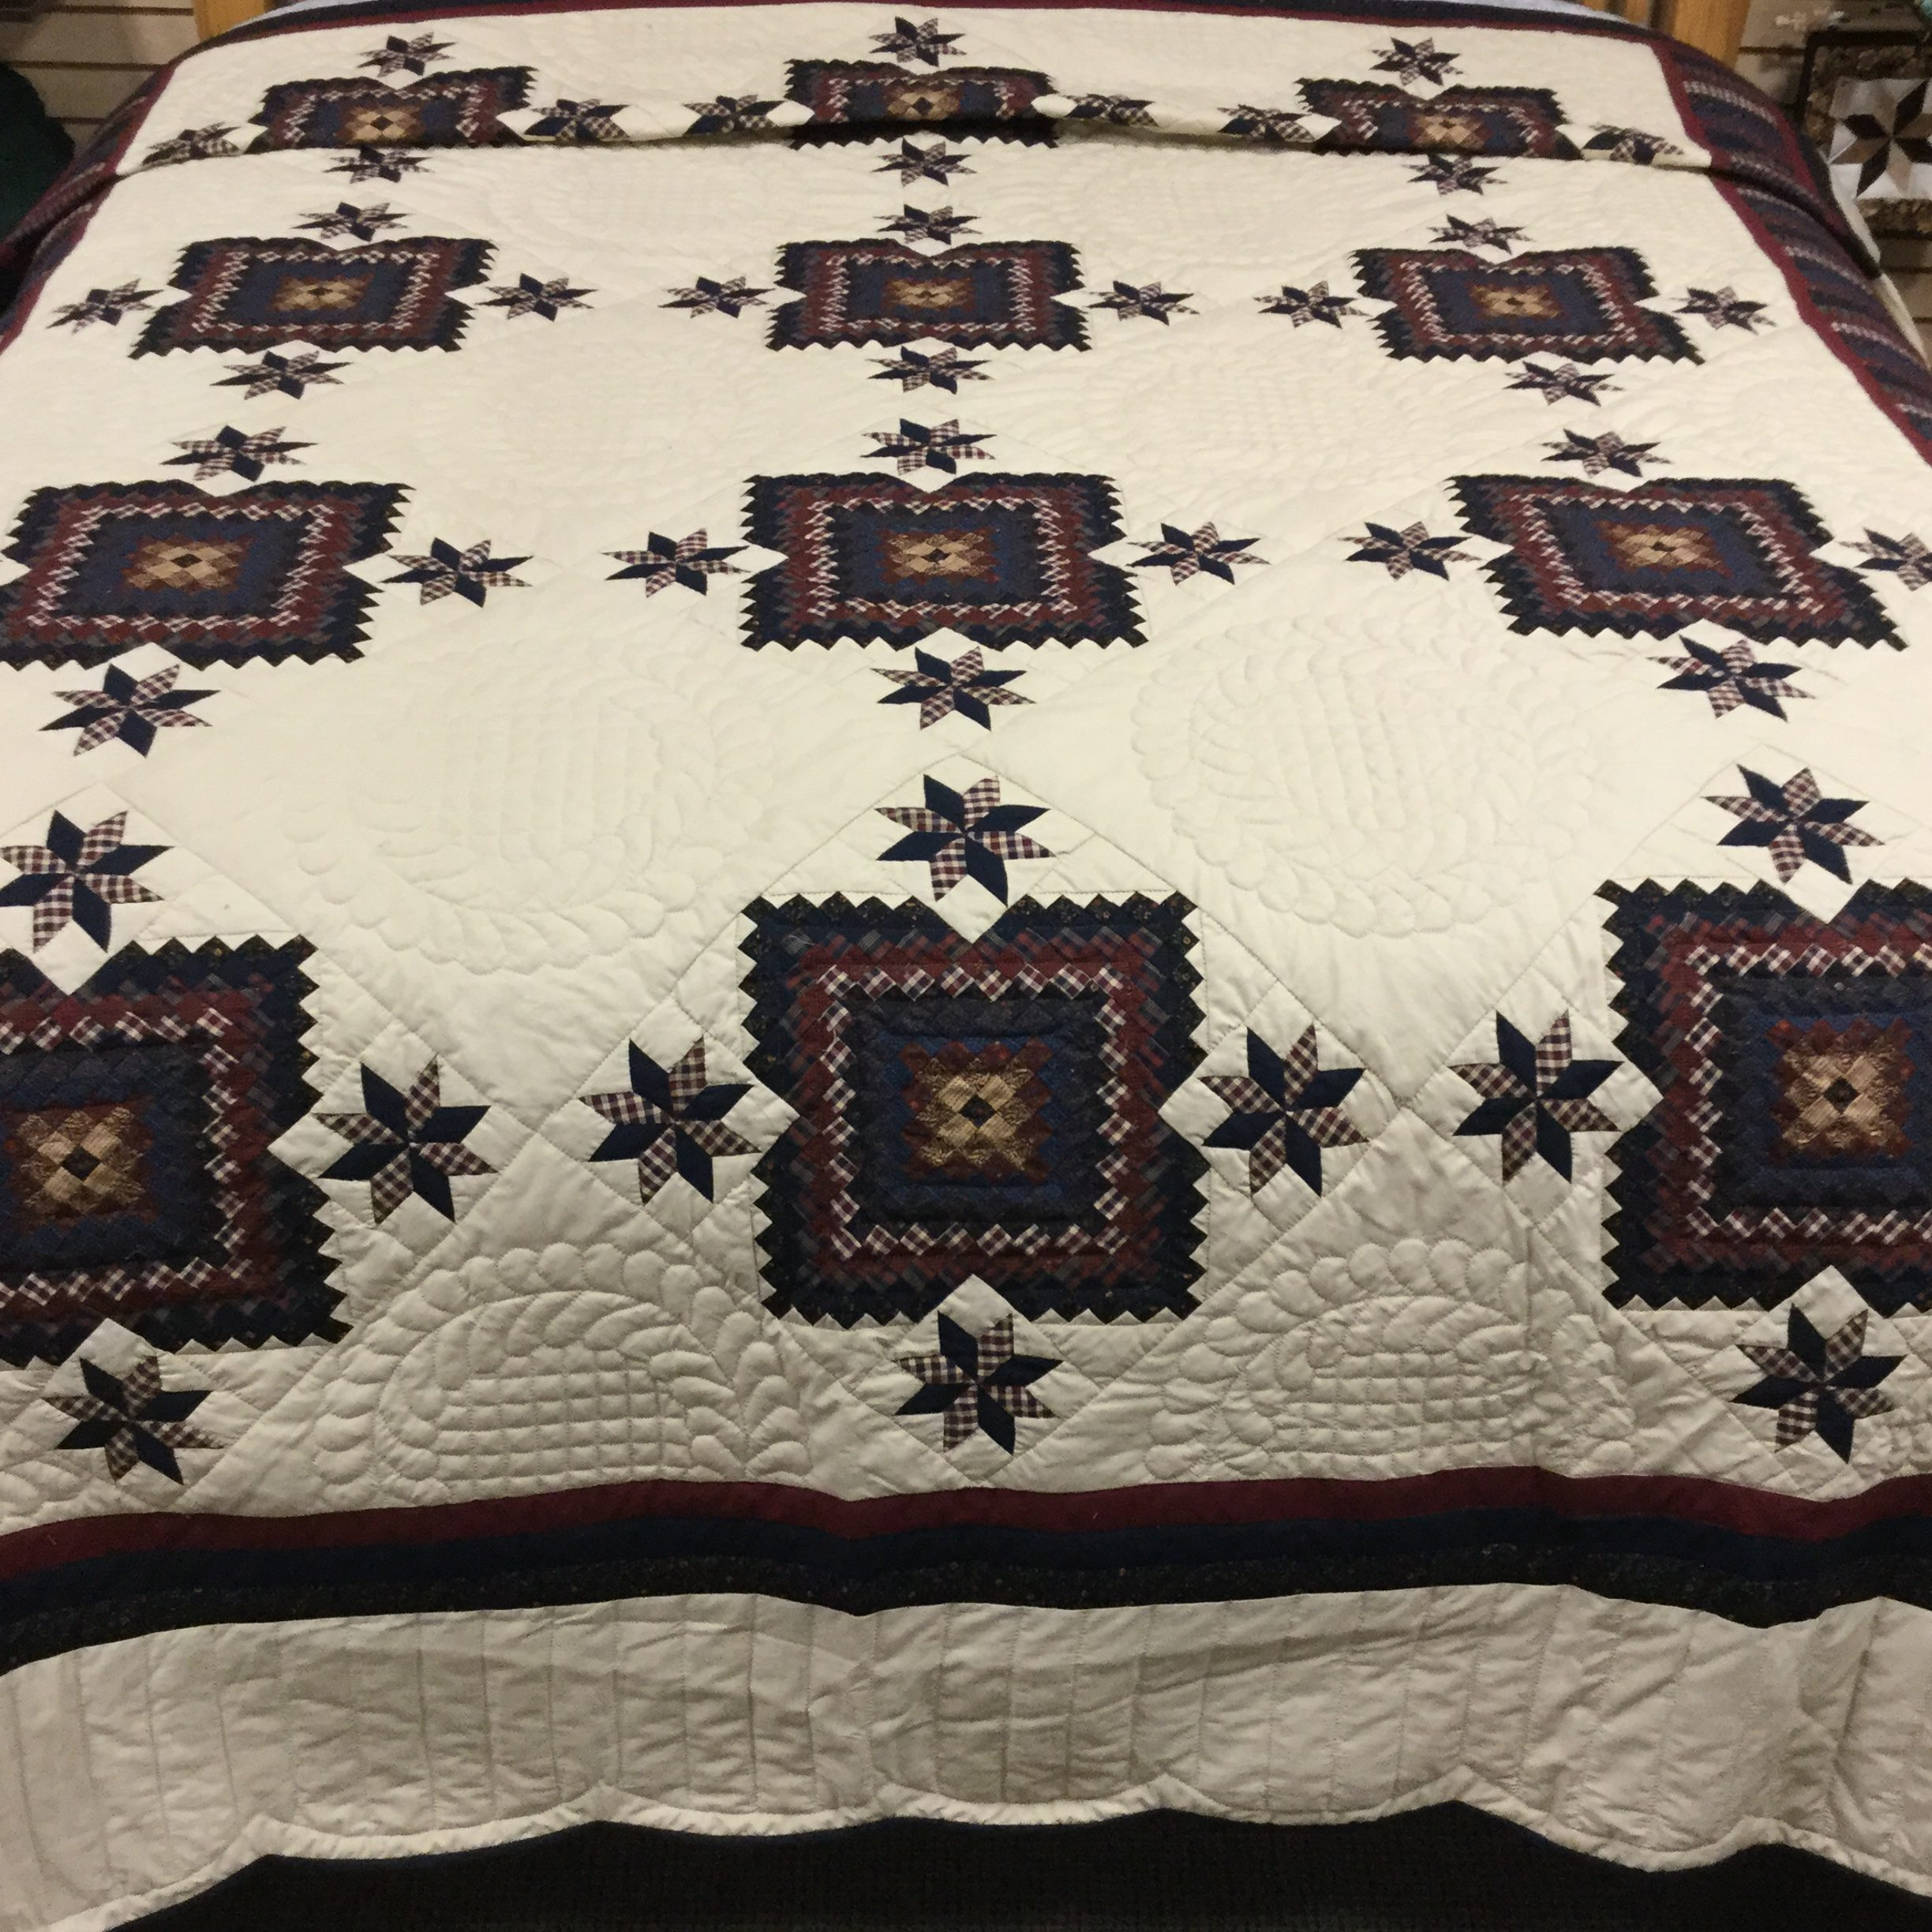 Lincoln Quilt-King-Family Farm Handcrafts